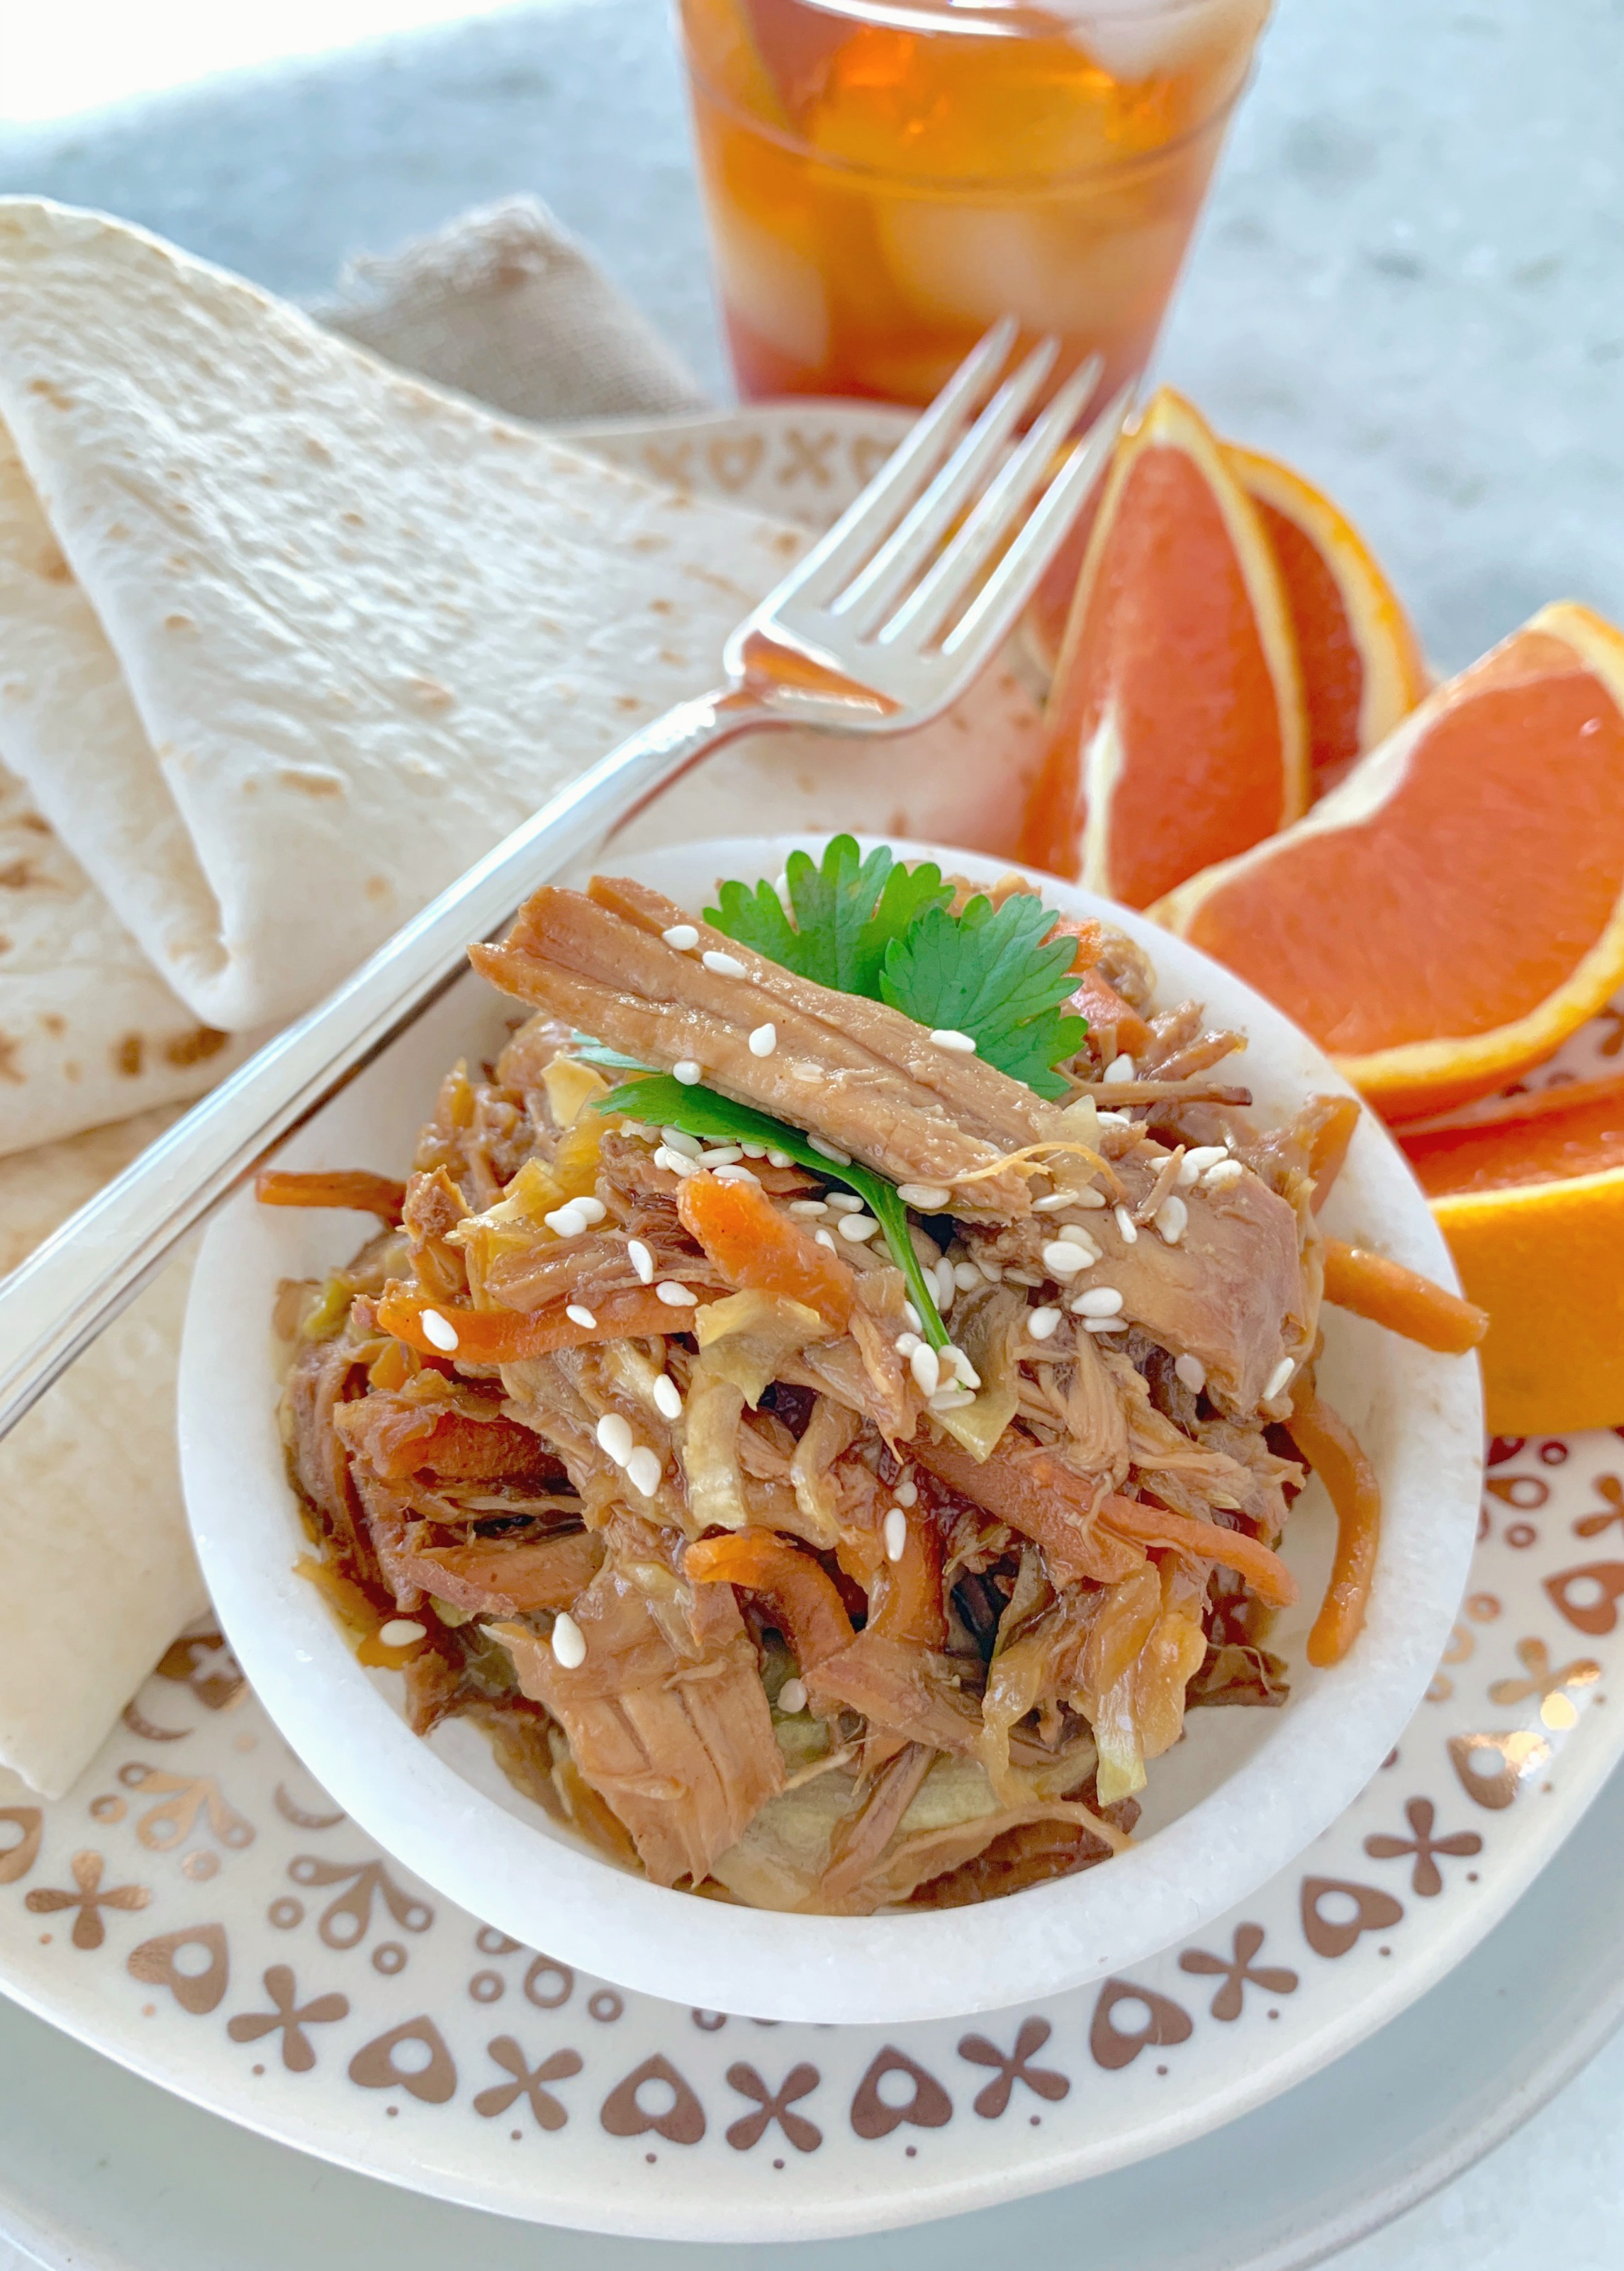 slow cooker moo shu pork on a plate with tortillas and orange slices